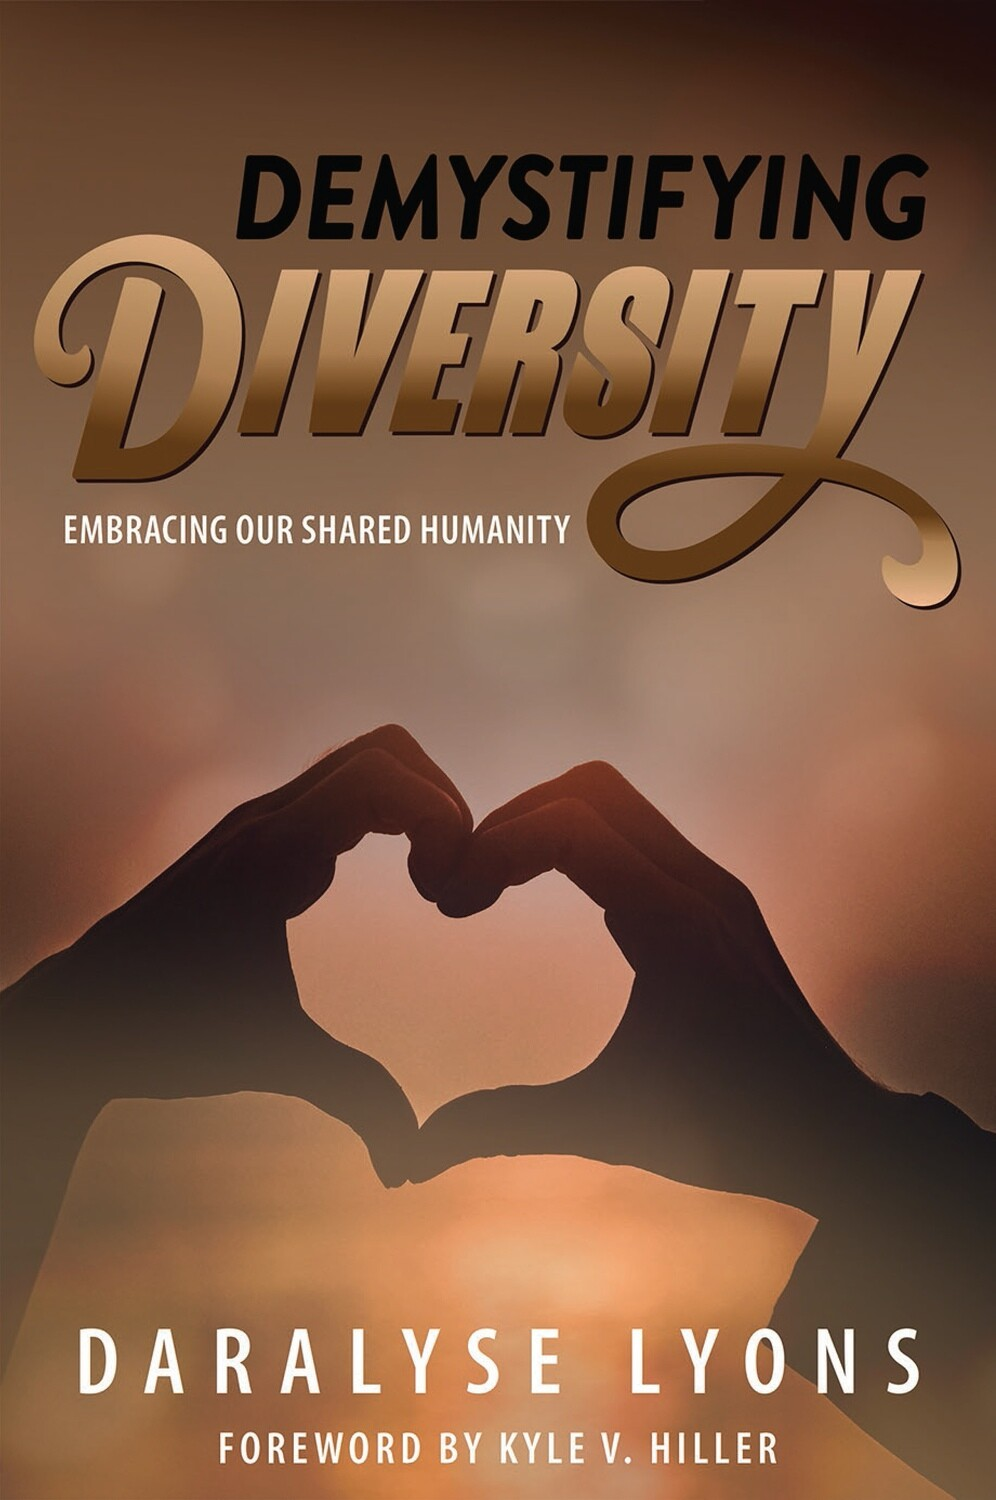 Demystifying Diversity